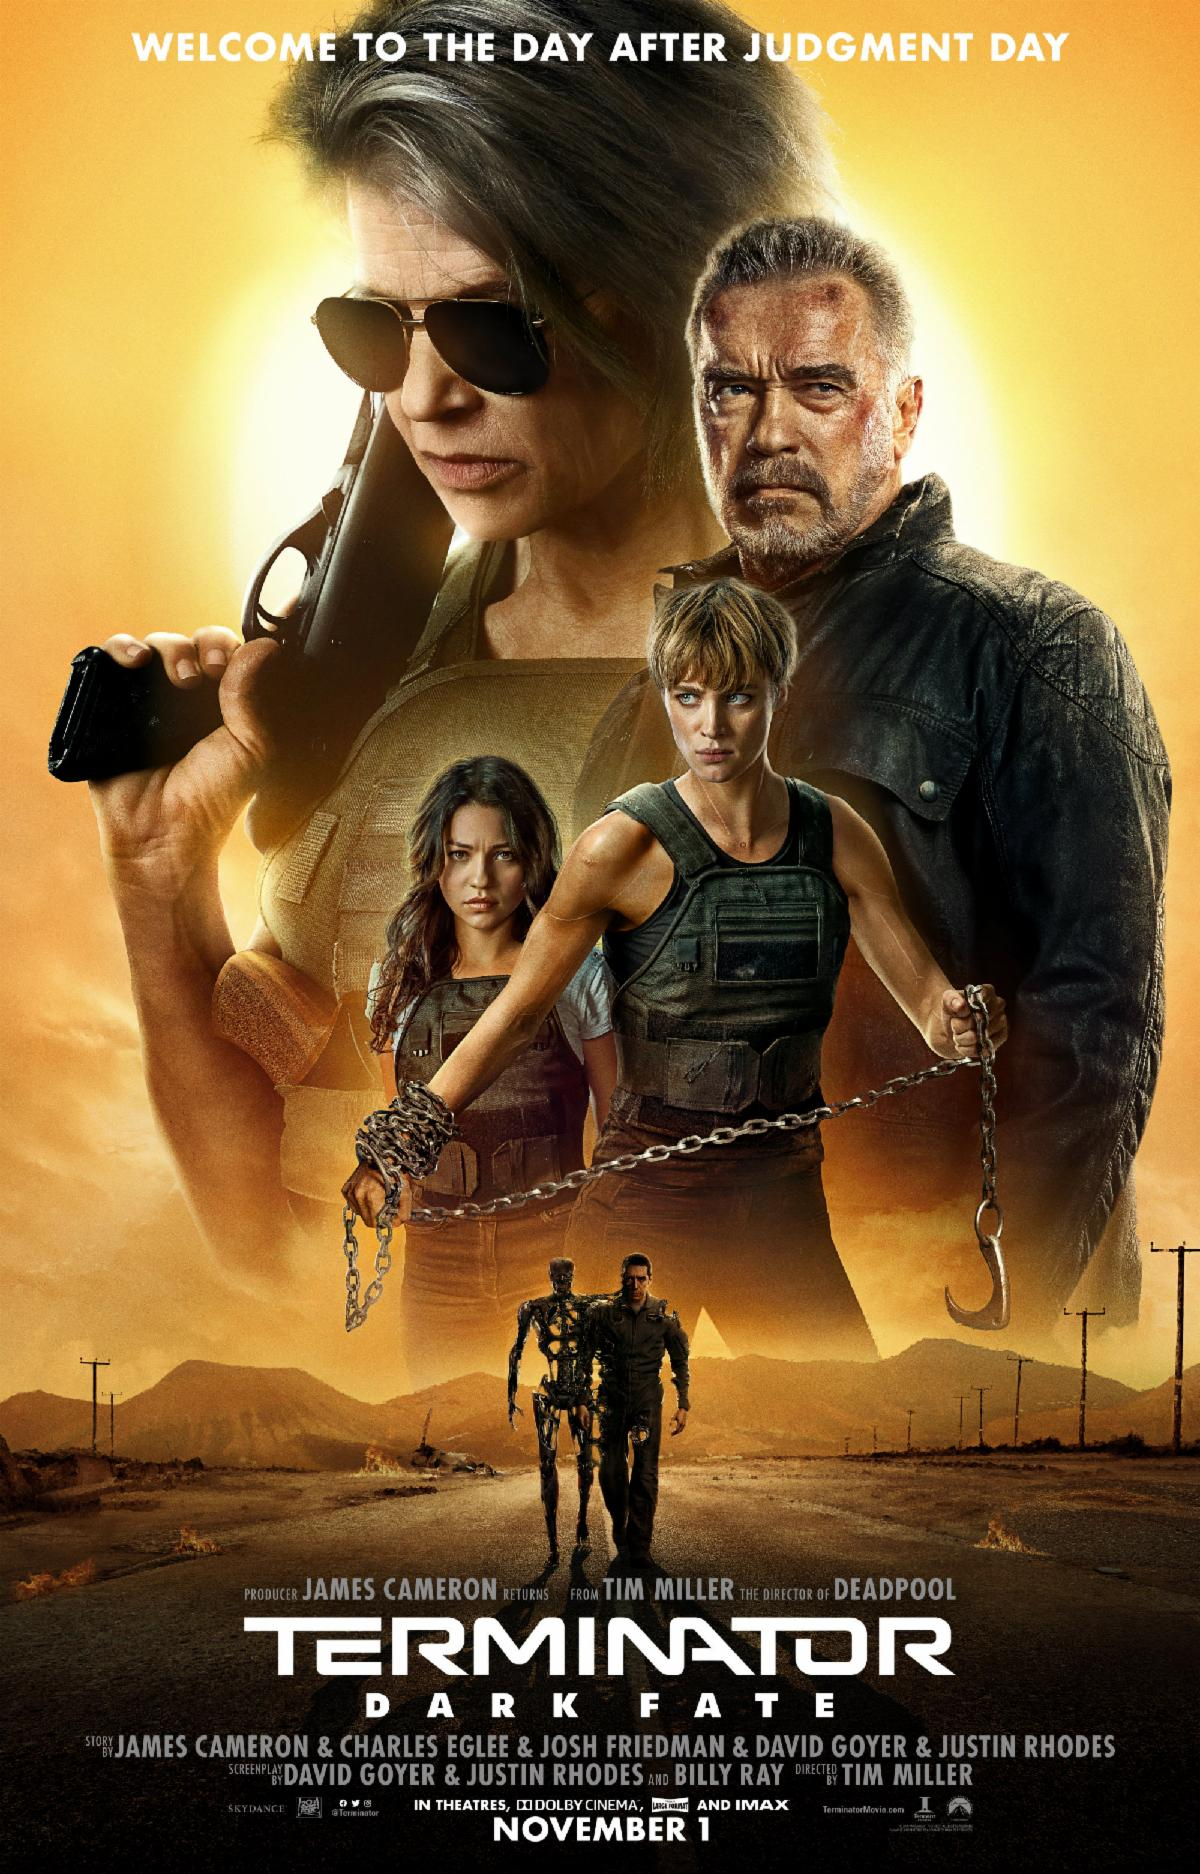 Download Terminator Dark Fate 2019 English HDCaM 720p 850MB 1080p 2.6GB